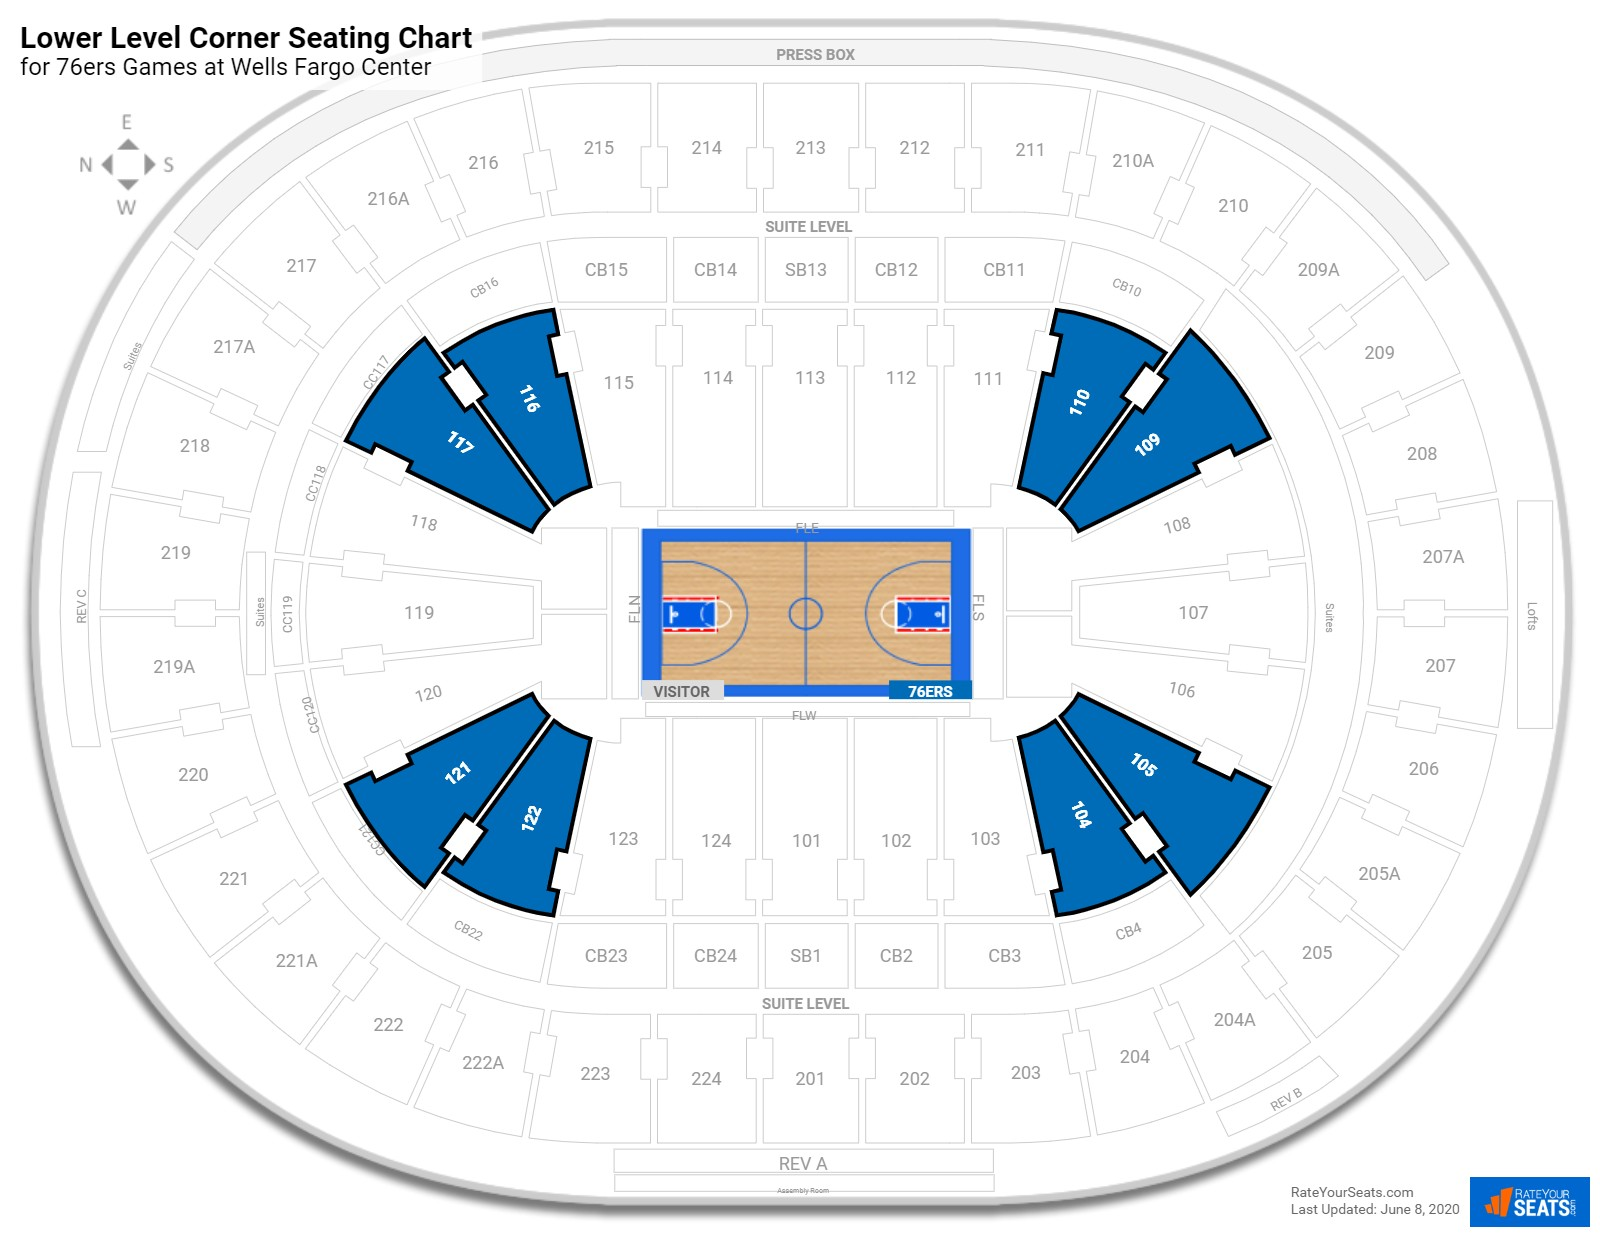 Wells Fargo Center Lower Level Corner seating chart